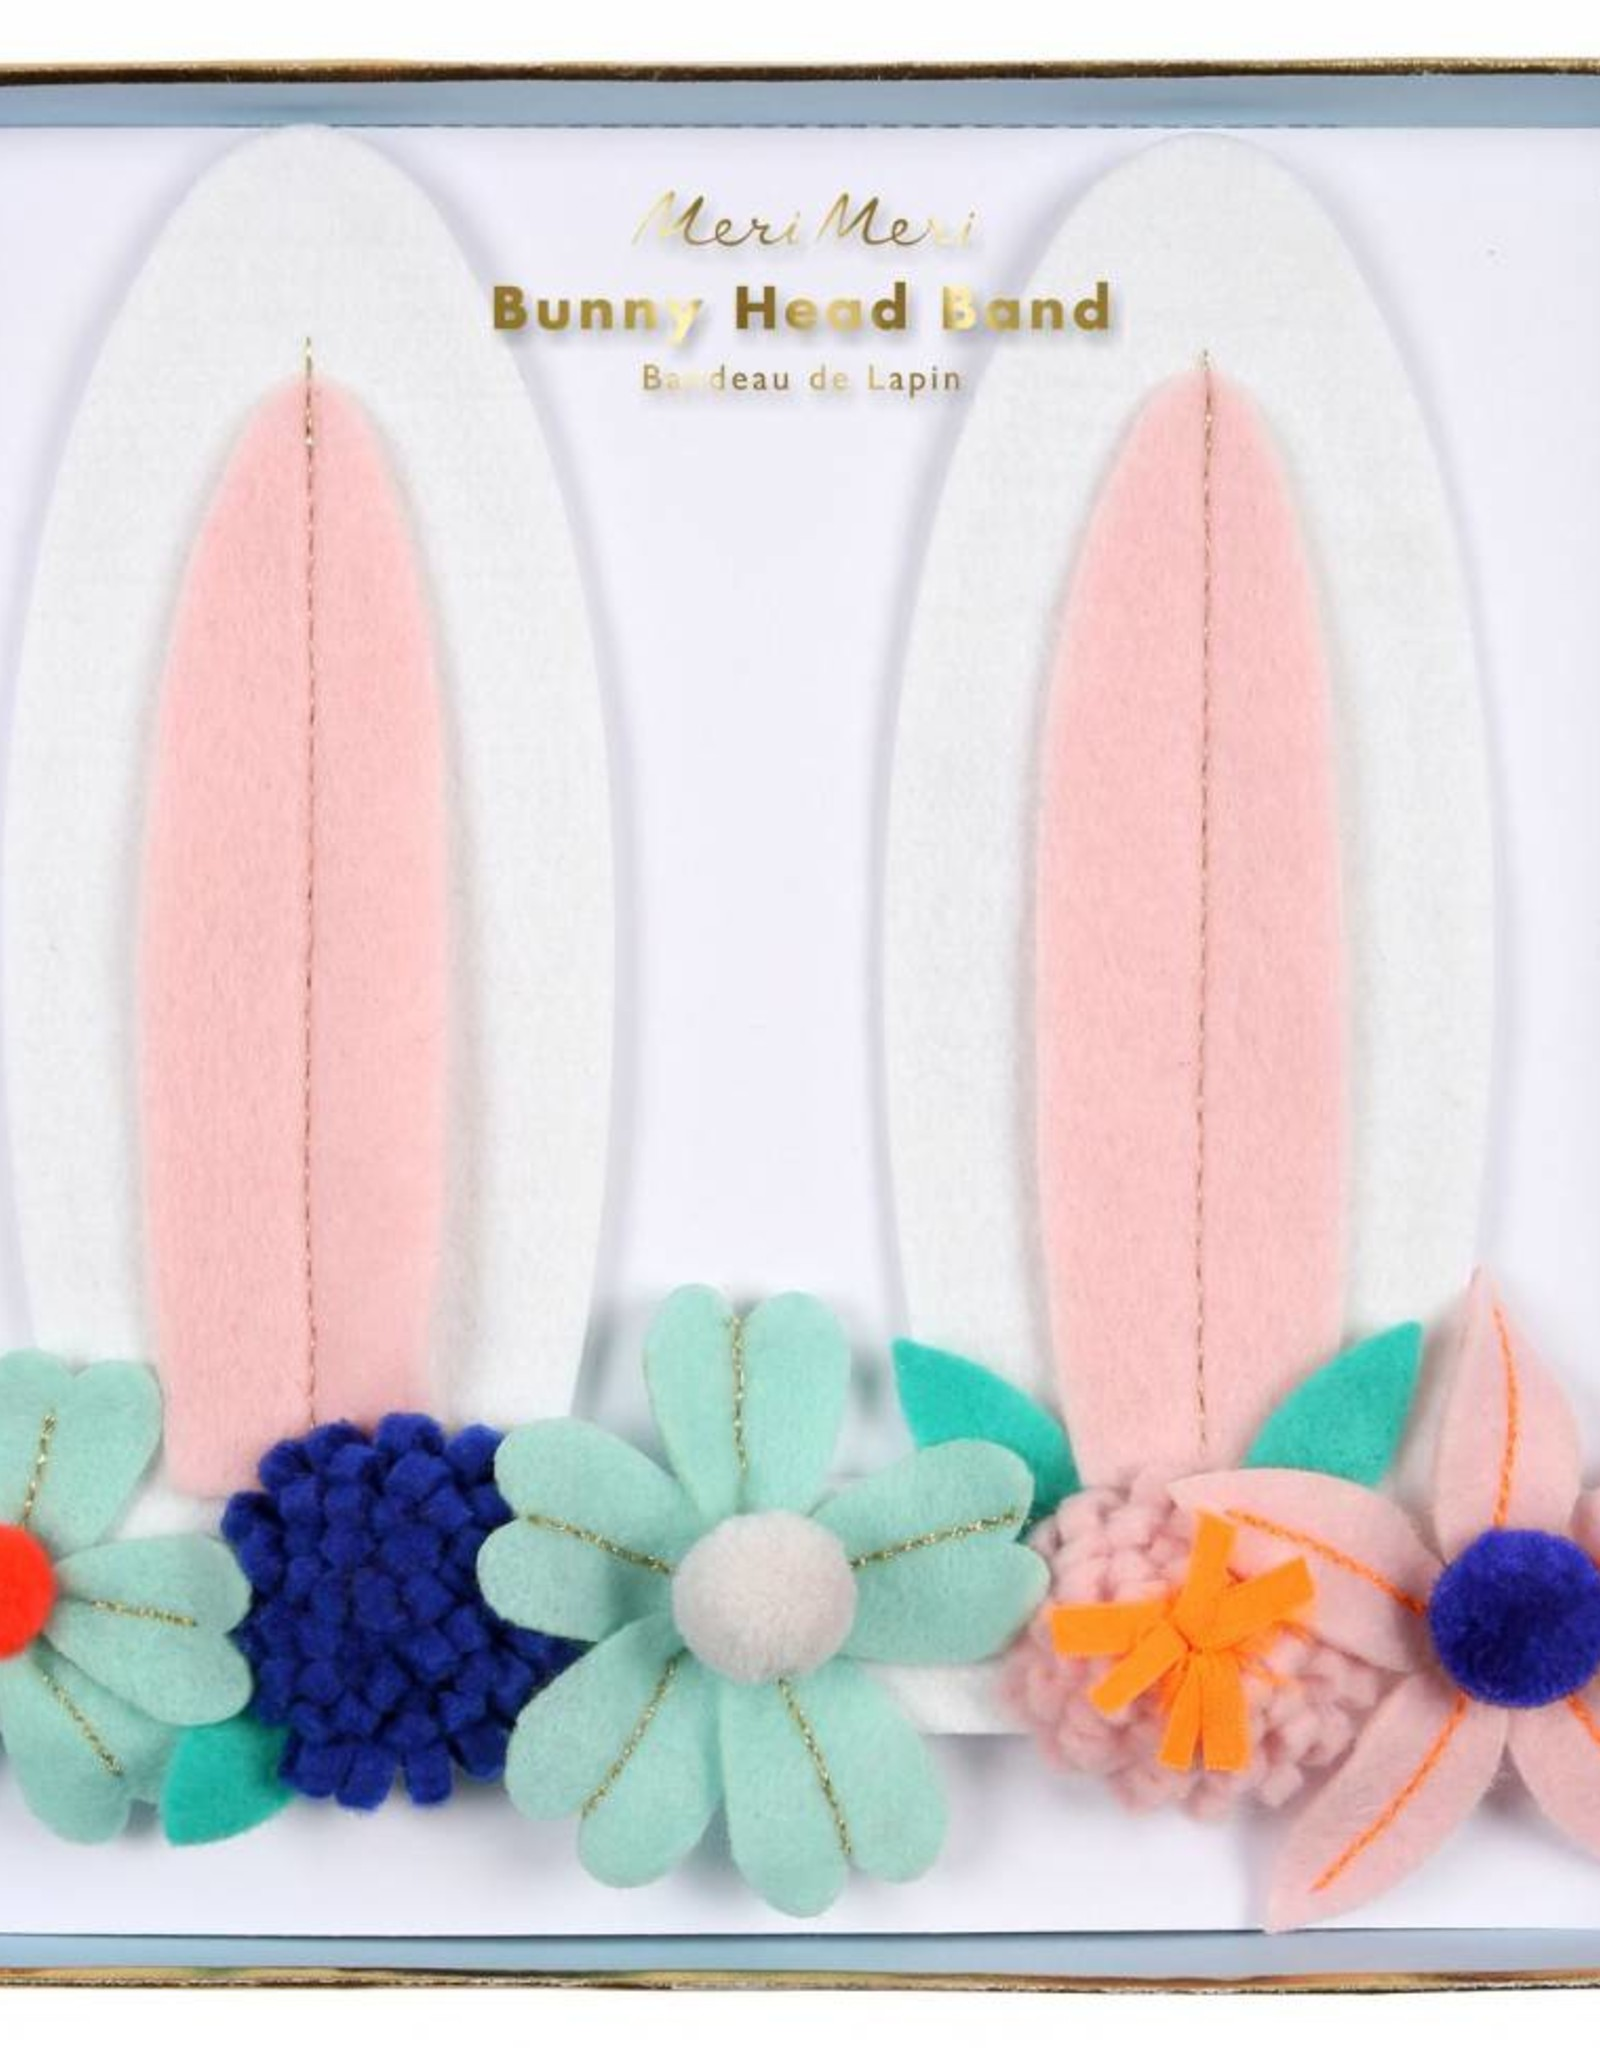 Meri Meri bunny dress-up headband